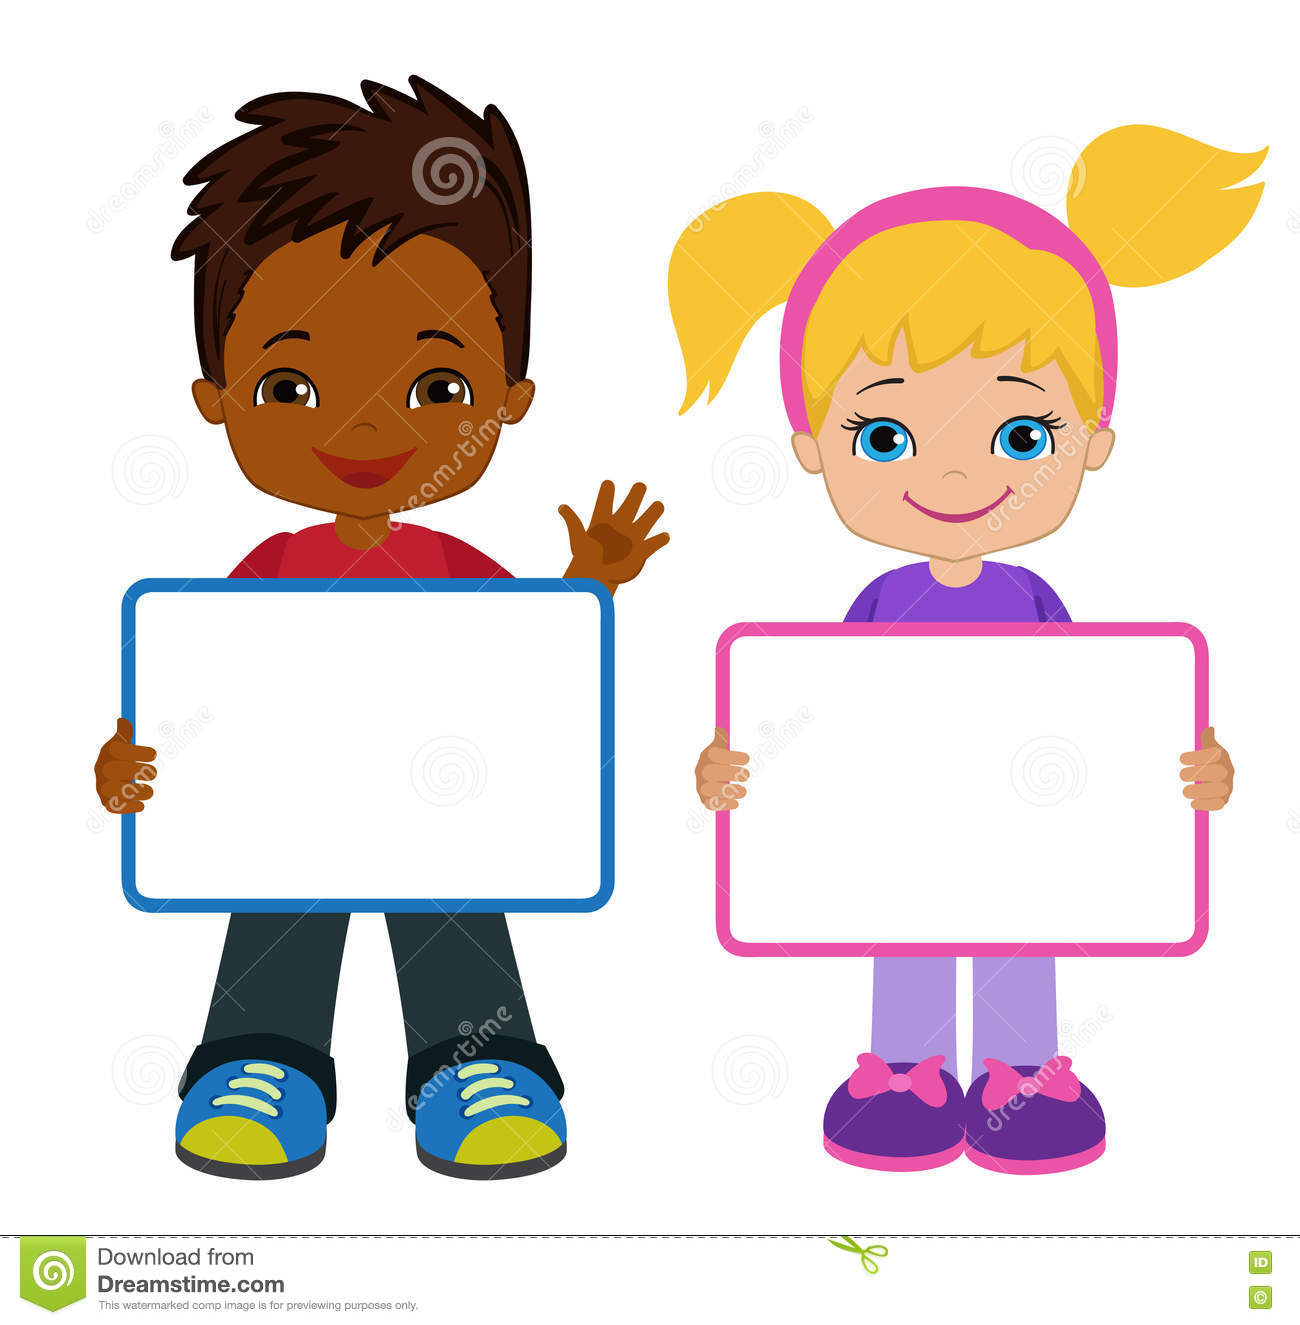 kids with signs bricht kids frame board clipart child meeting rh dreamstime com clipart child thinking clipart children reading